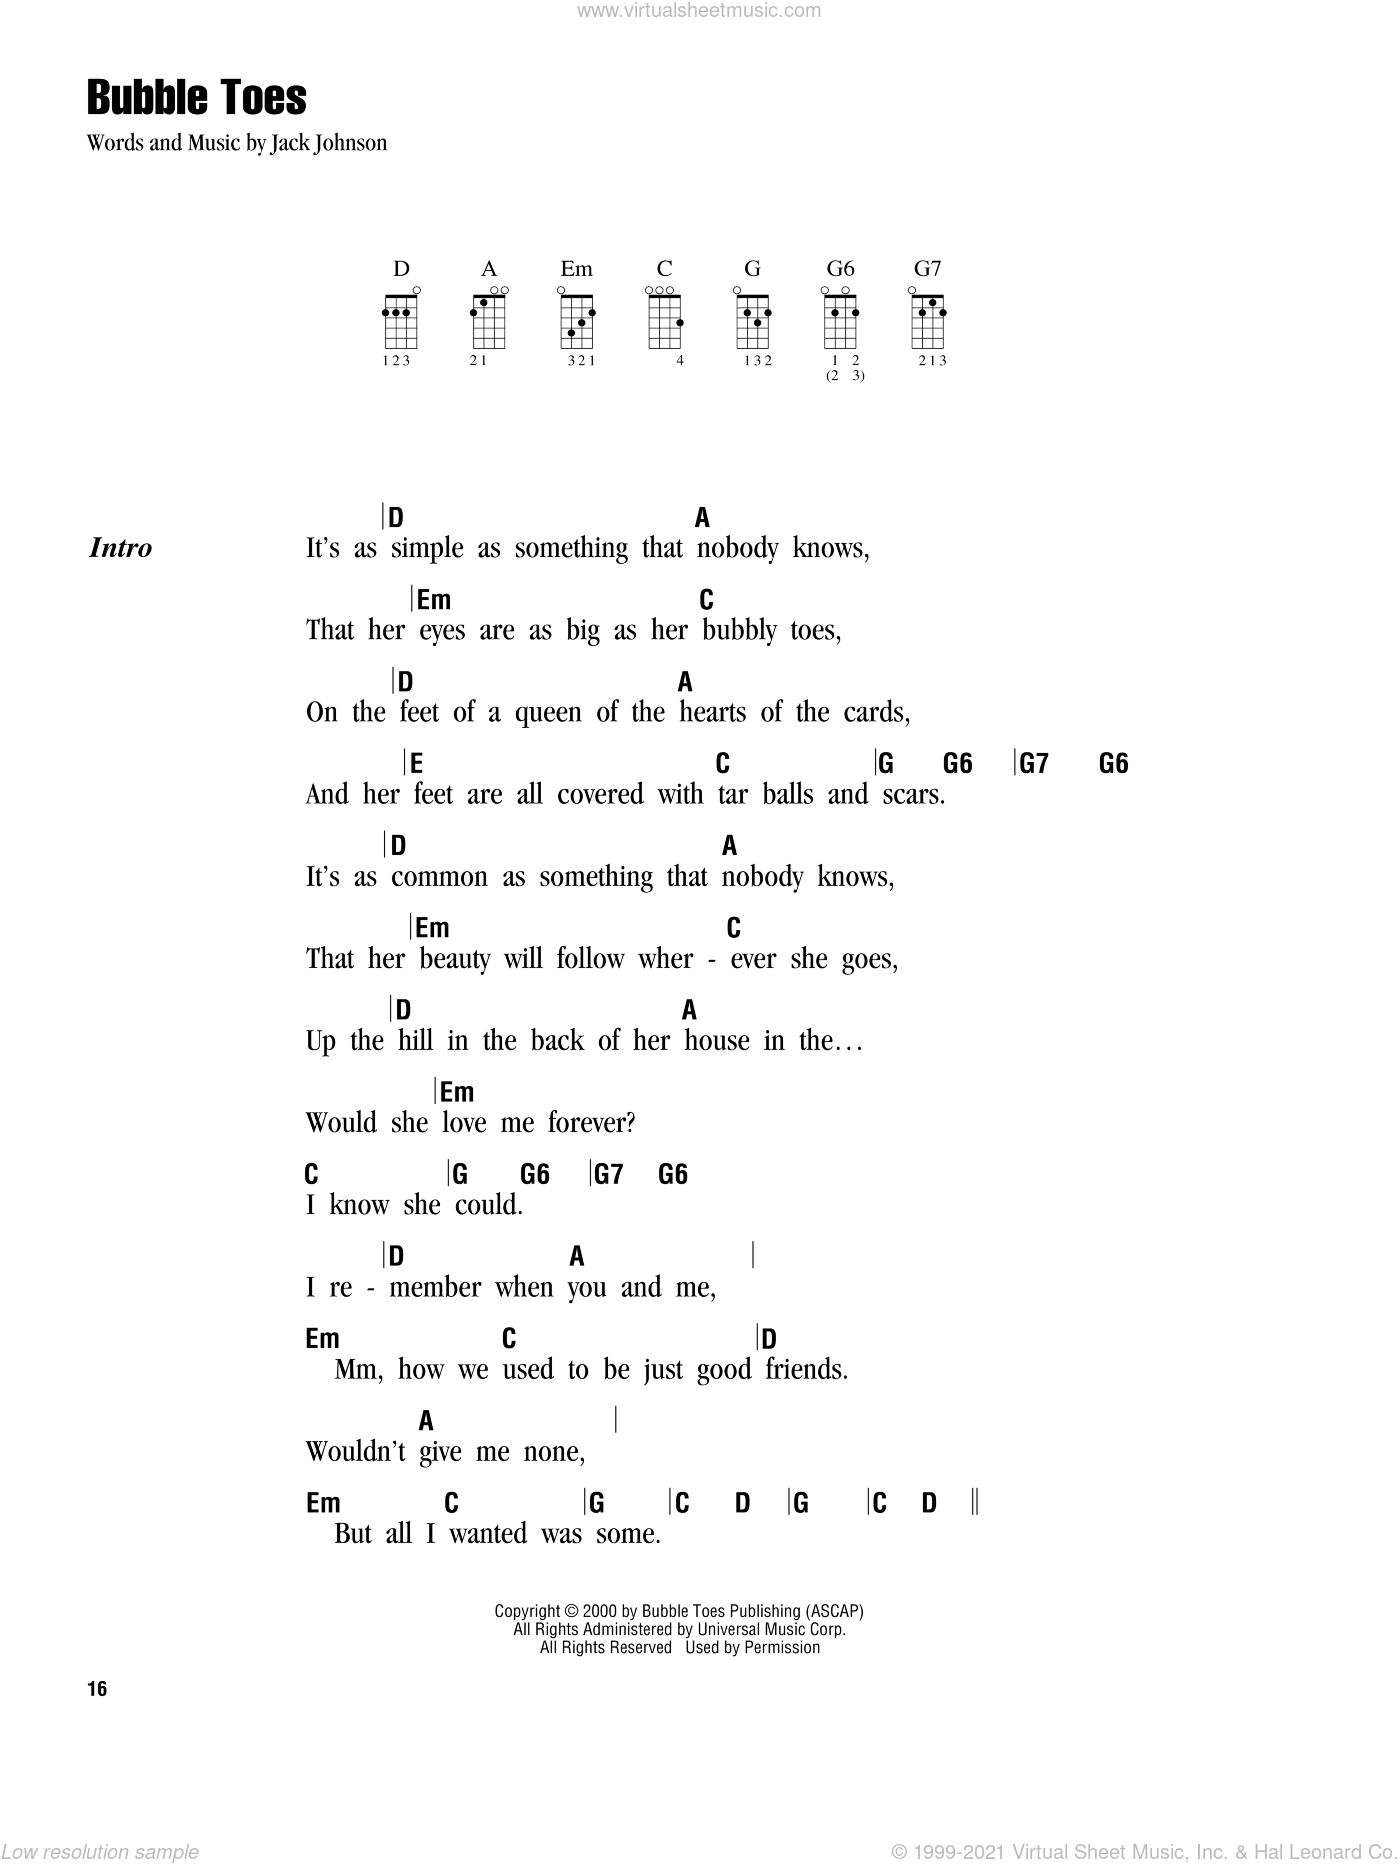 Bubble Toes sheet music for ukulele (chords) by Jack Johnson, intermediate